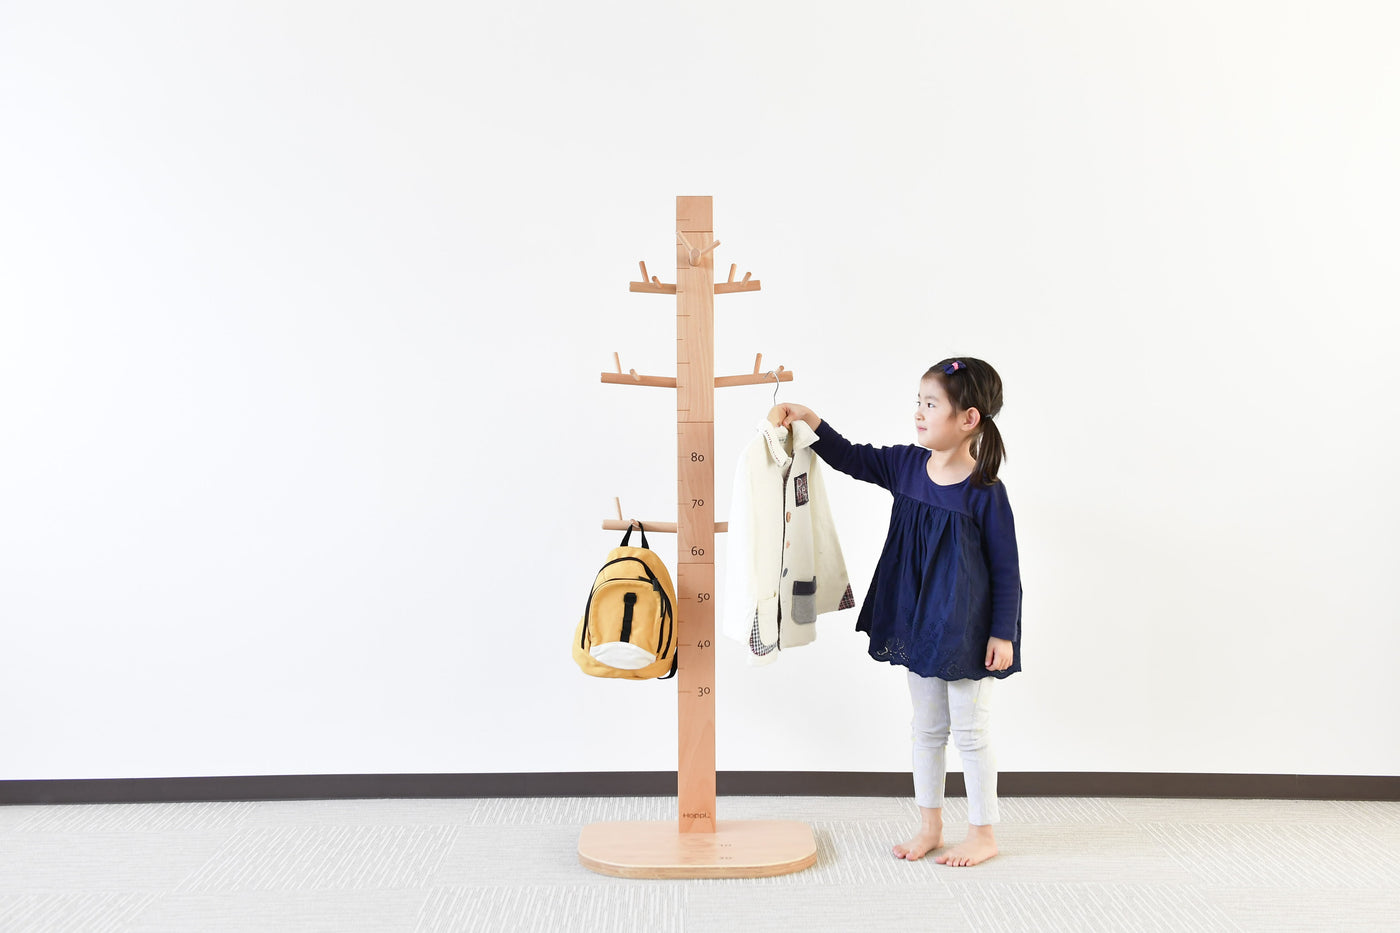 A HEIGHT GAUGE METER OR COAT STAND